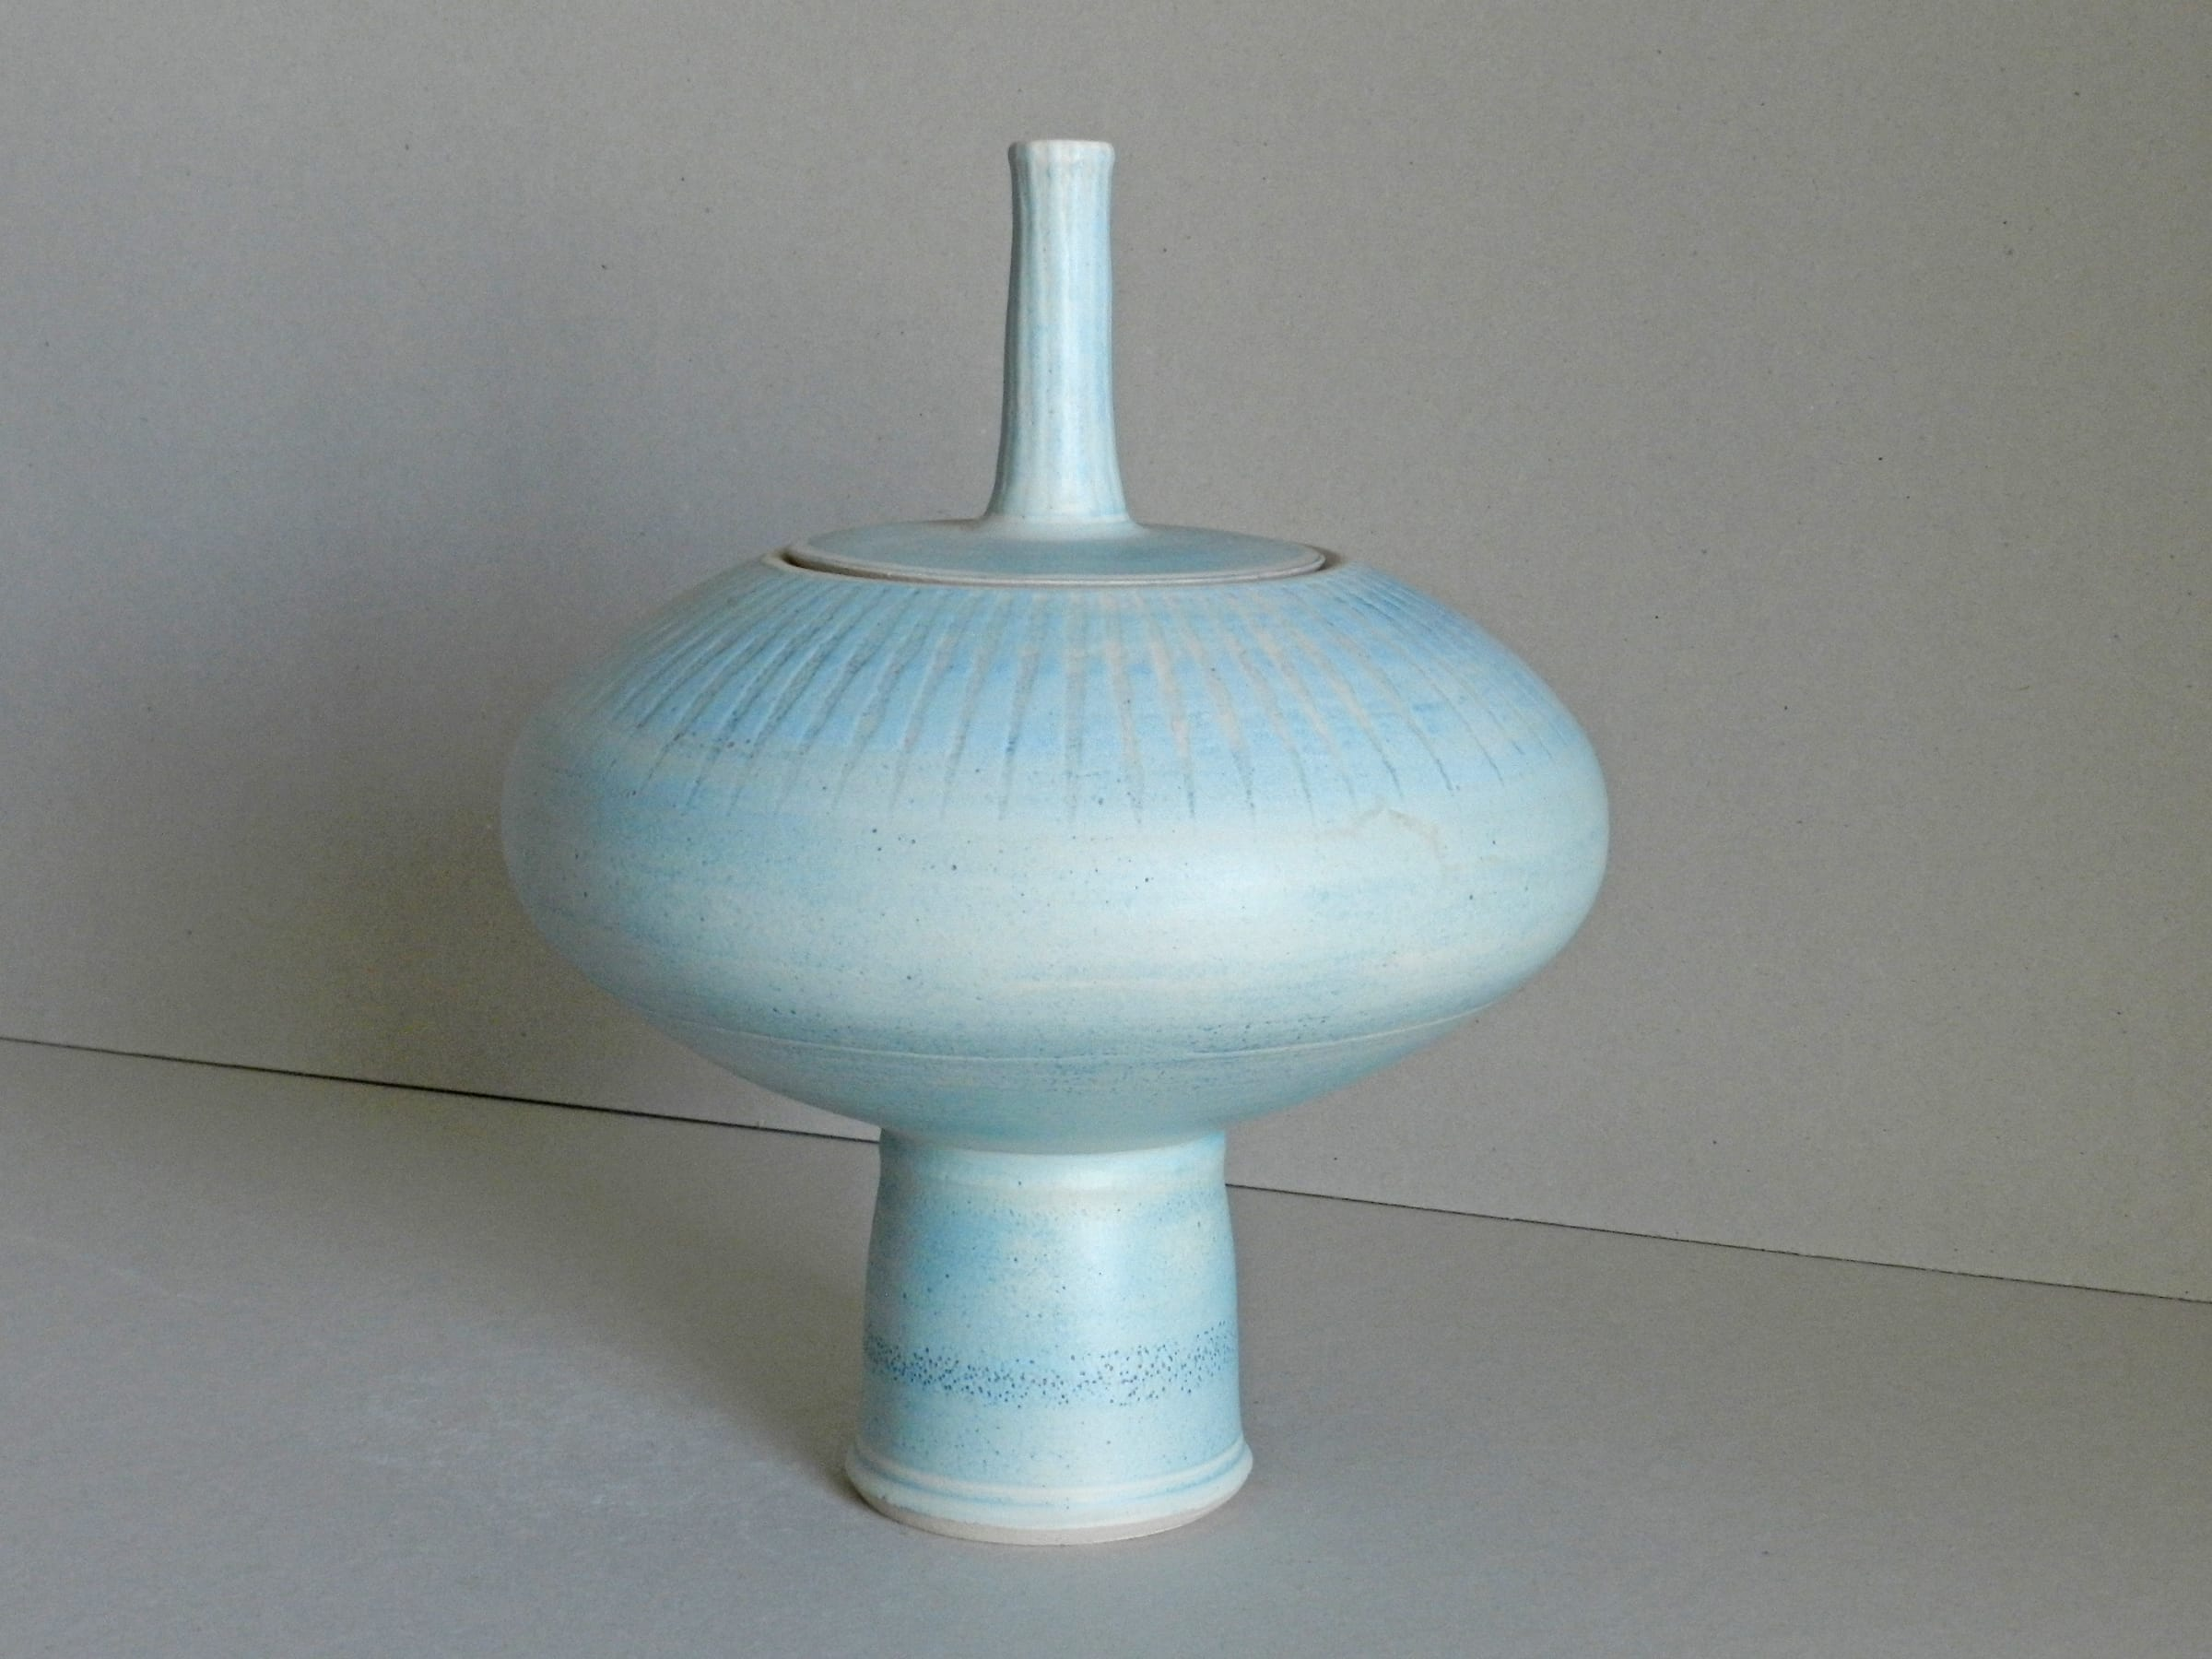 """<span class=""""link fancybox-details-link""""><a href=""""/artists/243-christine-feiler/works/6864-christine-feiler-lidded-pot-2019/"""">View Detail Page</a></span><div class=""""artist""""><strong>Christine Feiler</strong></div> b. 1948 <div class=""""title""""><em>Lidded Pot</em>, 2019</div> <div class=""""signed_and_dated"""">Ceramicist mark on the base</div> <div class=""""medium"""">Stoneware with enamels</div><div class=""""price"""">£320.00</div><div class=""""copyright_line"""">Copyright The Artist</div>"""